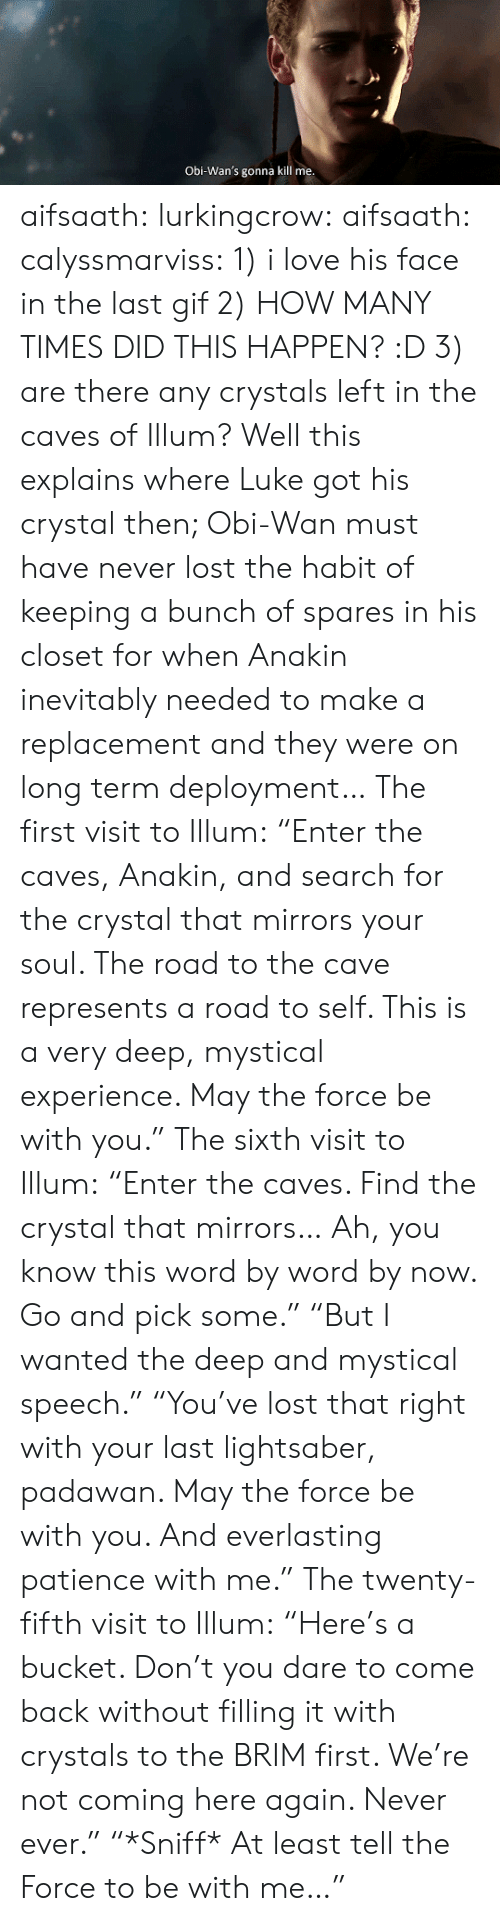 "Deployment: Obi-Wan's gonna kill me aifsaath:  lurkingcrow:  aifsaath:  calyssmarviss: 1) i love his face in the last gif 2) HOW MANY TIMES DID THIS HAPPEN? :D 3) are there any crystals left in the caves of Illum?  Well this explains where Luke got his crystal then; Obi-Wan must have never lost the habit of keeping a bunch of spares in his closet for when Anakin inevitably needed to make a replacement and they were on long term deployment…  The first visit to Illum: ""Enter the caves, Anakin, and search for the crystal that mirrors your soul. The road to the cave represents a road to self. This is a very deep, mystical experience. May the force be with you."" The sixth visit to Illum: ""Enter the caves. Find the crystal that mirrors… Ah, you know this word by word by now. Go and pick some."" ""But I wanted the deep and mystical speech."" ""You've lost that right with your last lightsaber, padawan. May the force be with you. And everlasting patience with me."" The twenty-fifth visit to Illum: ""Here's a bucket. Don't you dare to come back without filling it with crystals to the BRIM first. We're not coming here again. Never ever."" ""*Sniff* At least tell the Force to be with me…"""